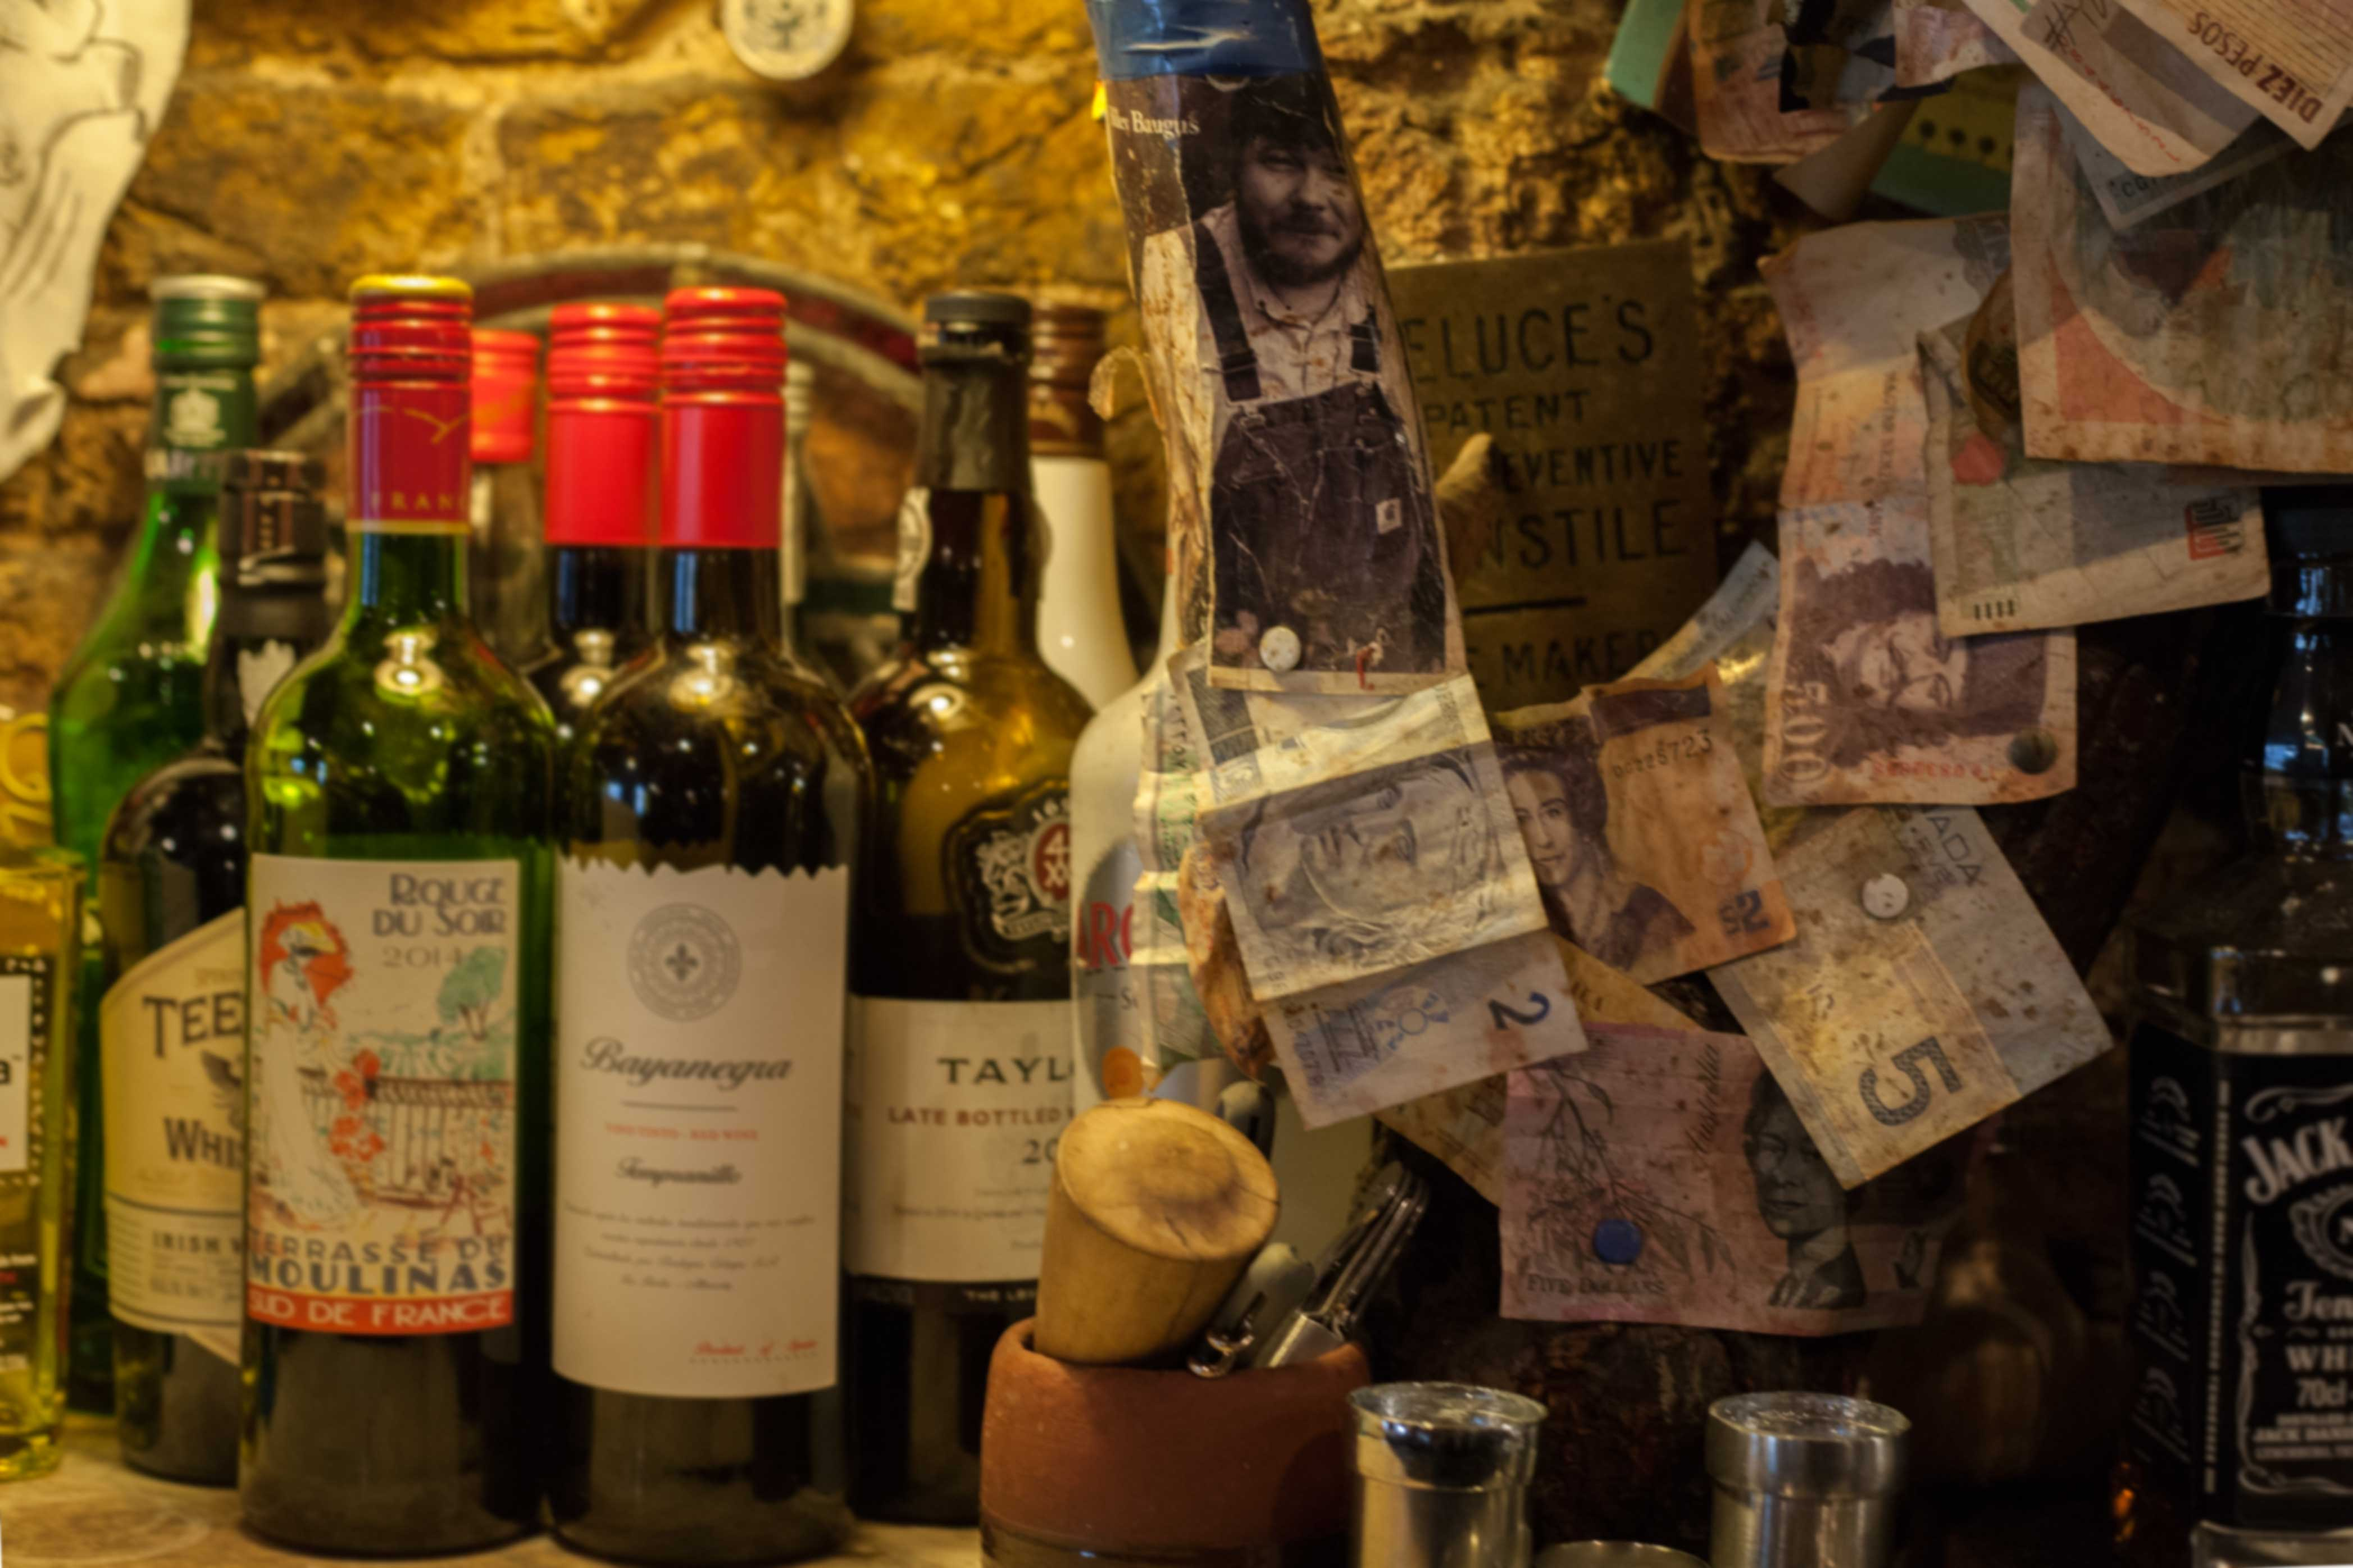 Wine bottles and clutter behind the bar of a traditional pub in Cork